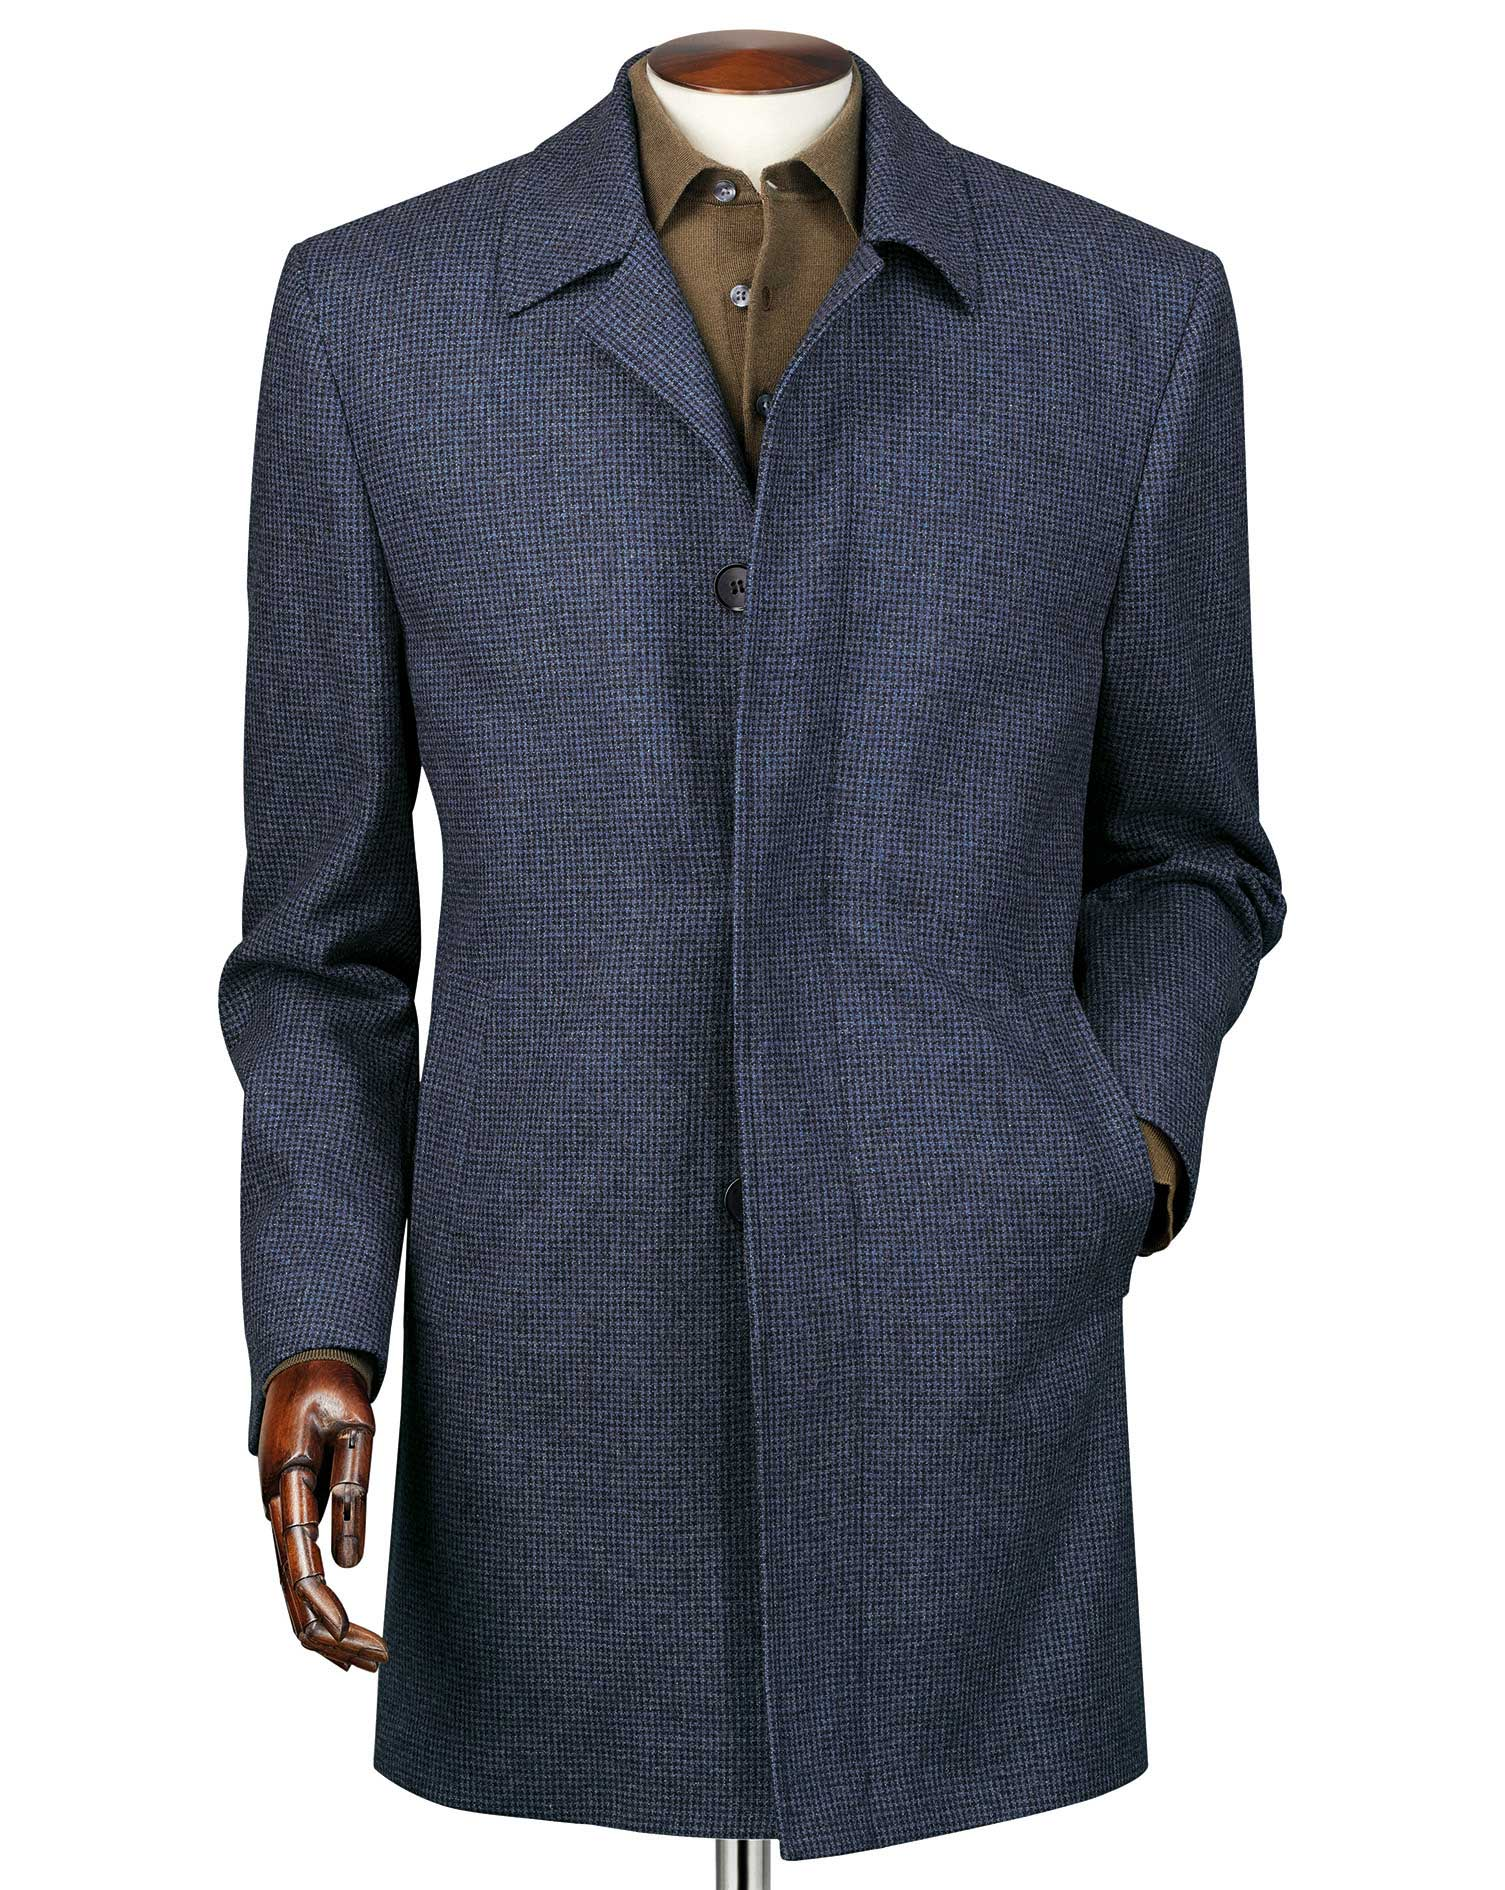 airforce blue puppytooth weatherproof wool car wool coat size 42 by charles tyrwhitt